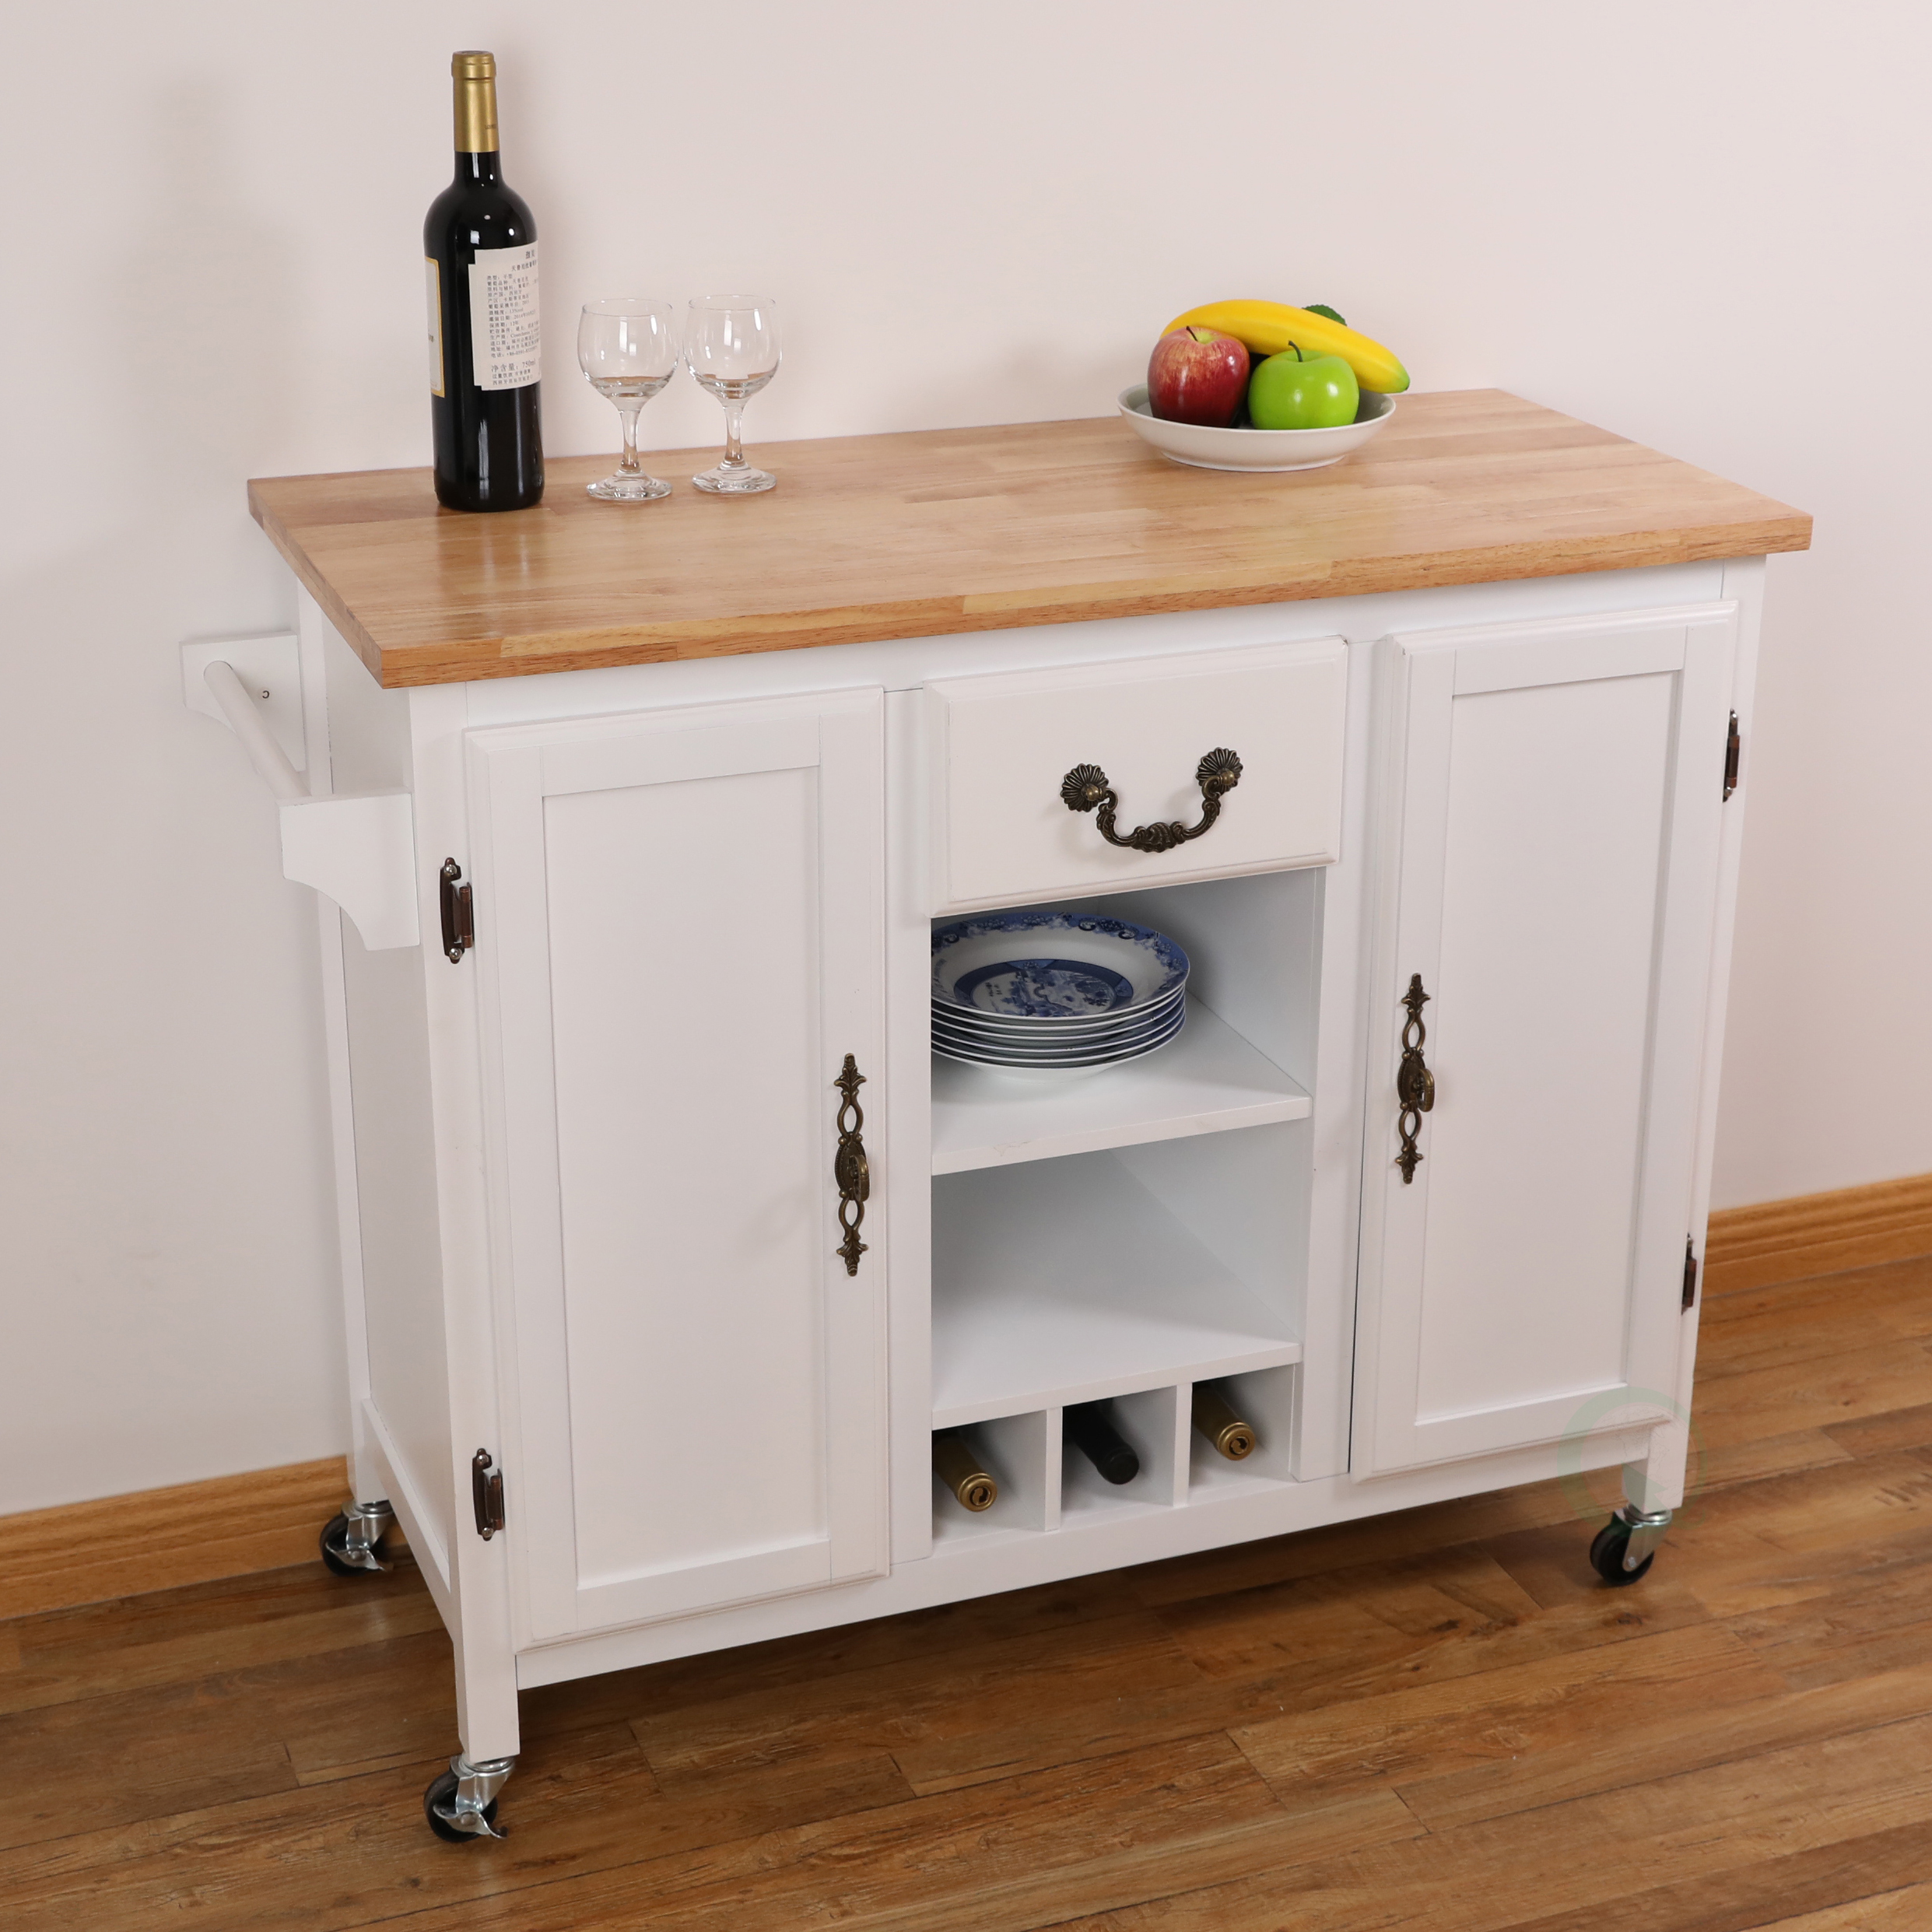 Details about New Large Wooden Kitchen Island Trolley with Heavy Duty  Rolling Casters